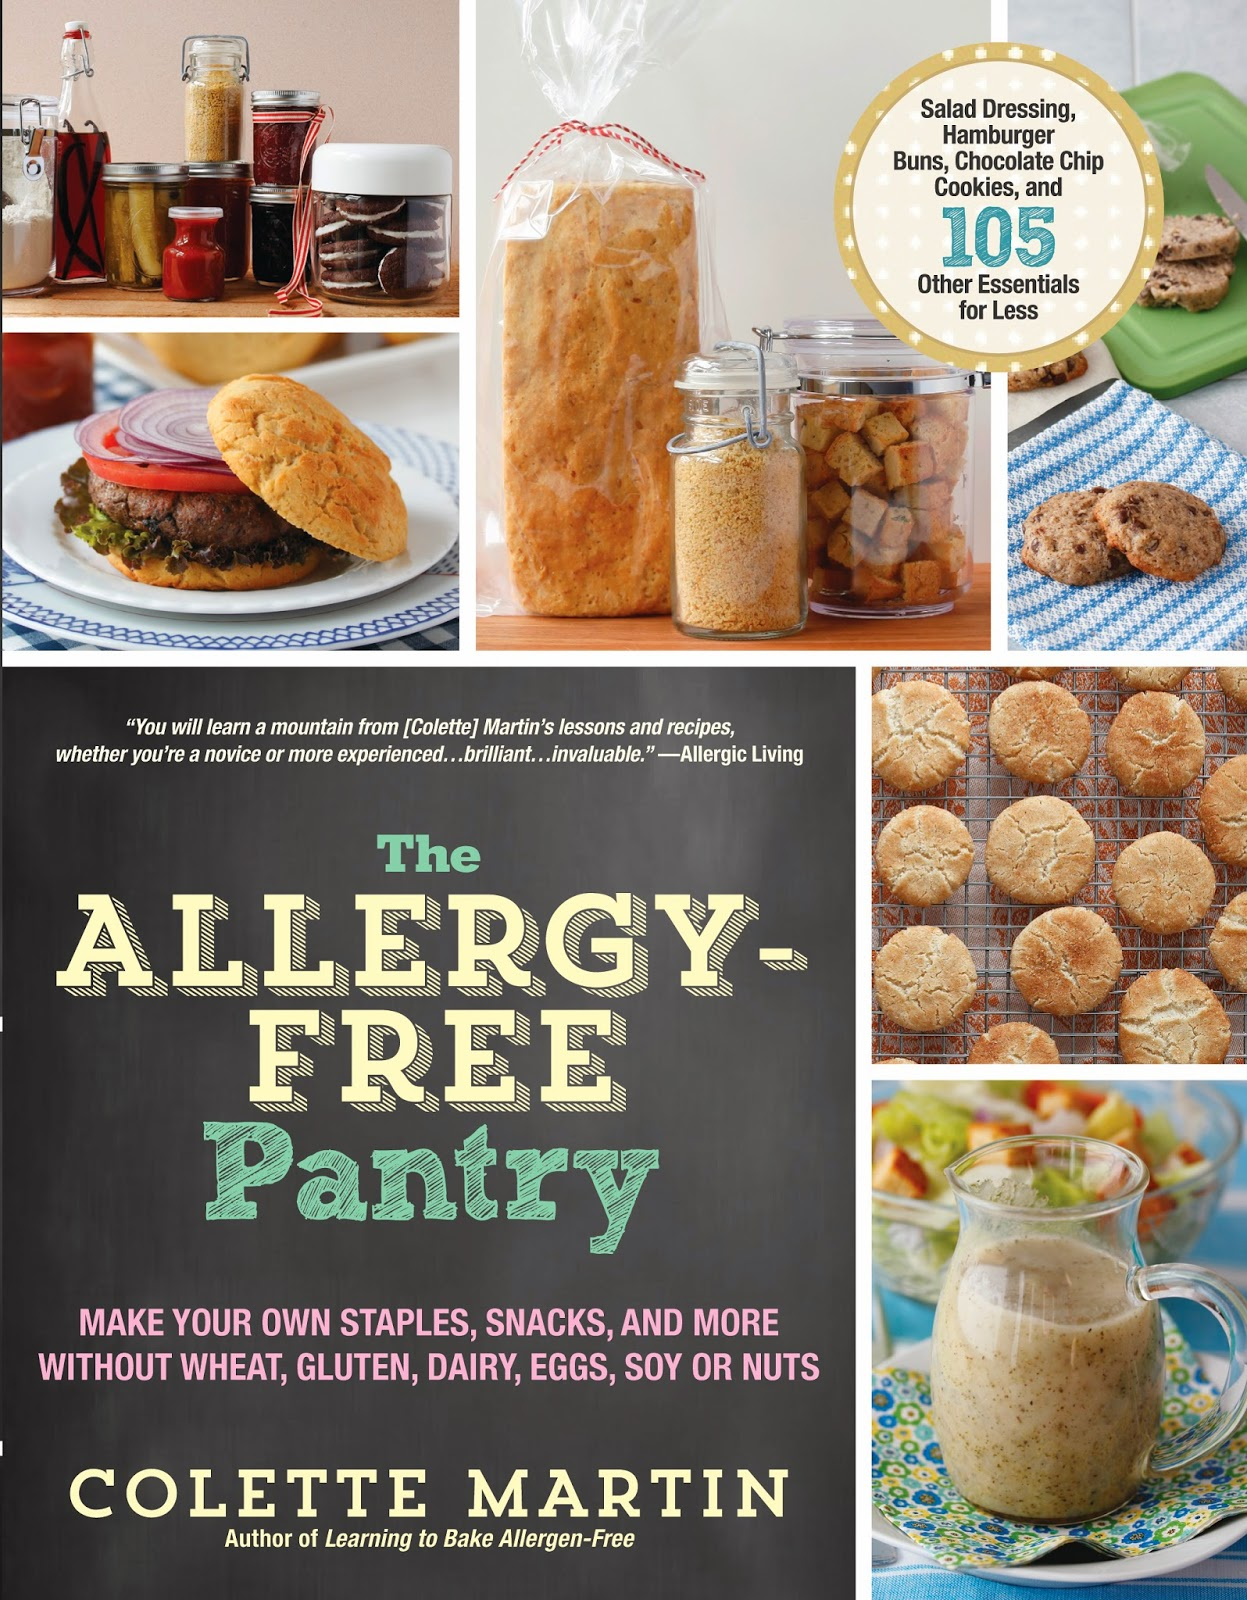 Learning to eat allergy free the allergy free pantry is coming soon the allergy free pantry is coming soon forumfinder Choice Image